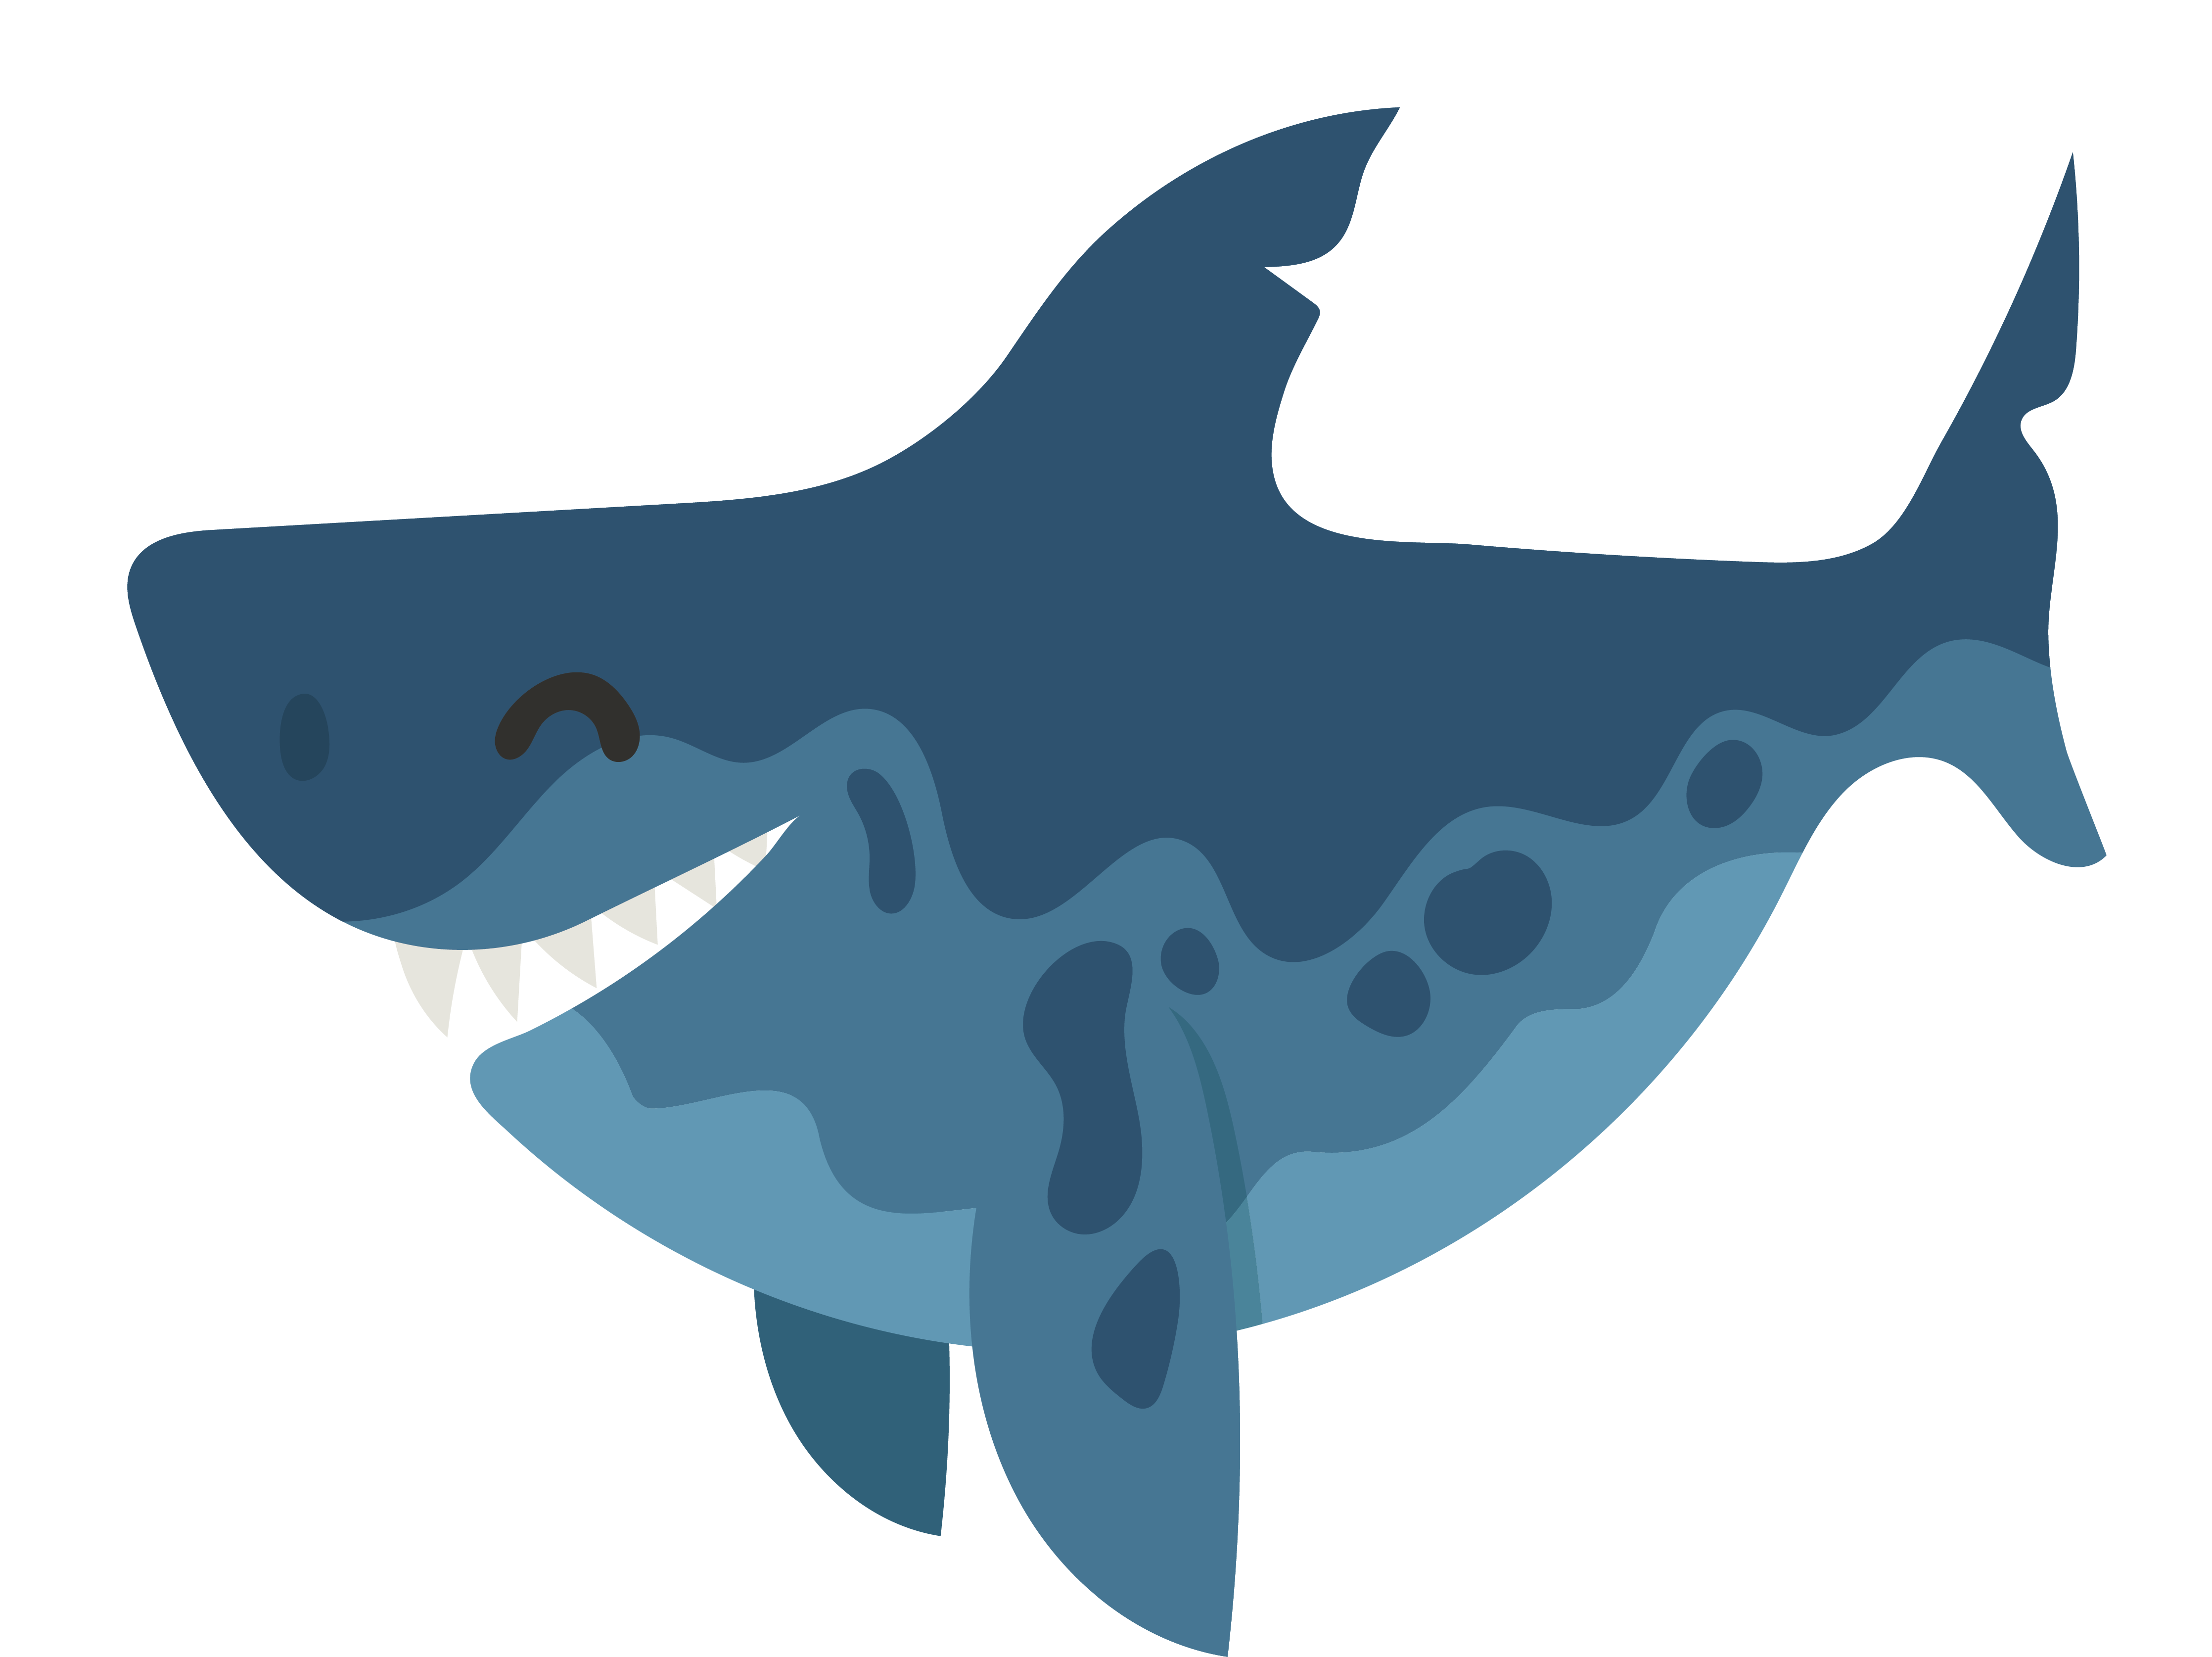 Fang the png download. Free clipart of shark eyes and teeth